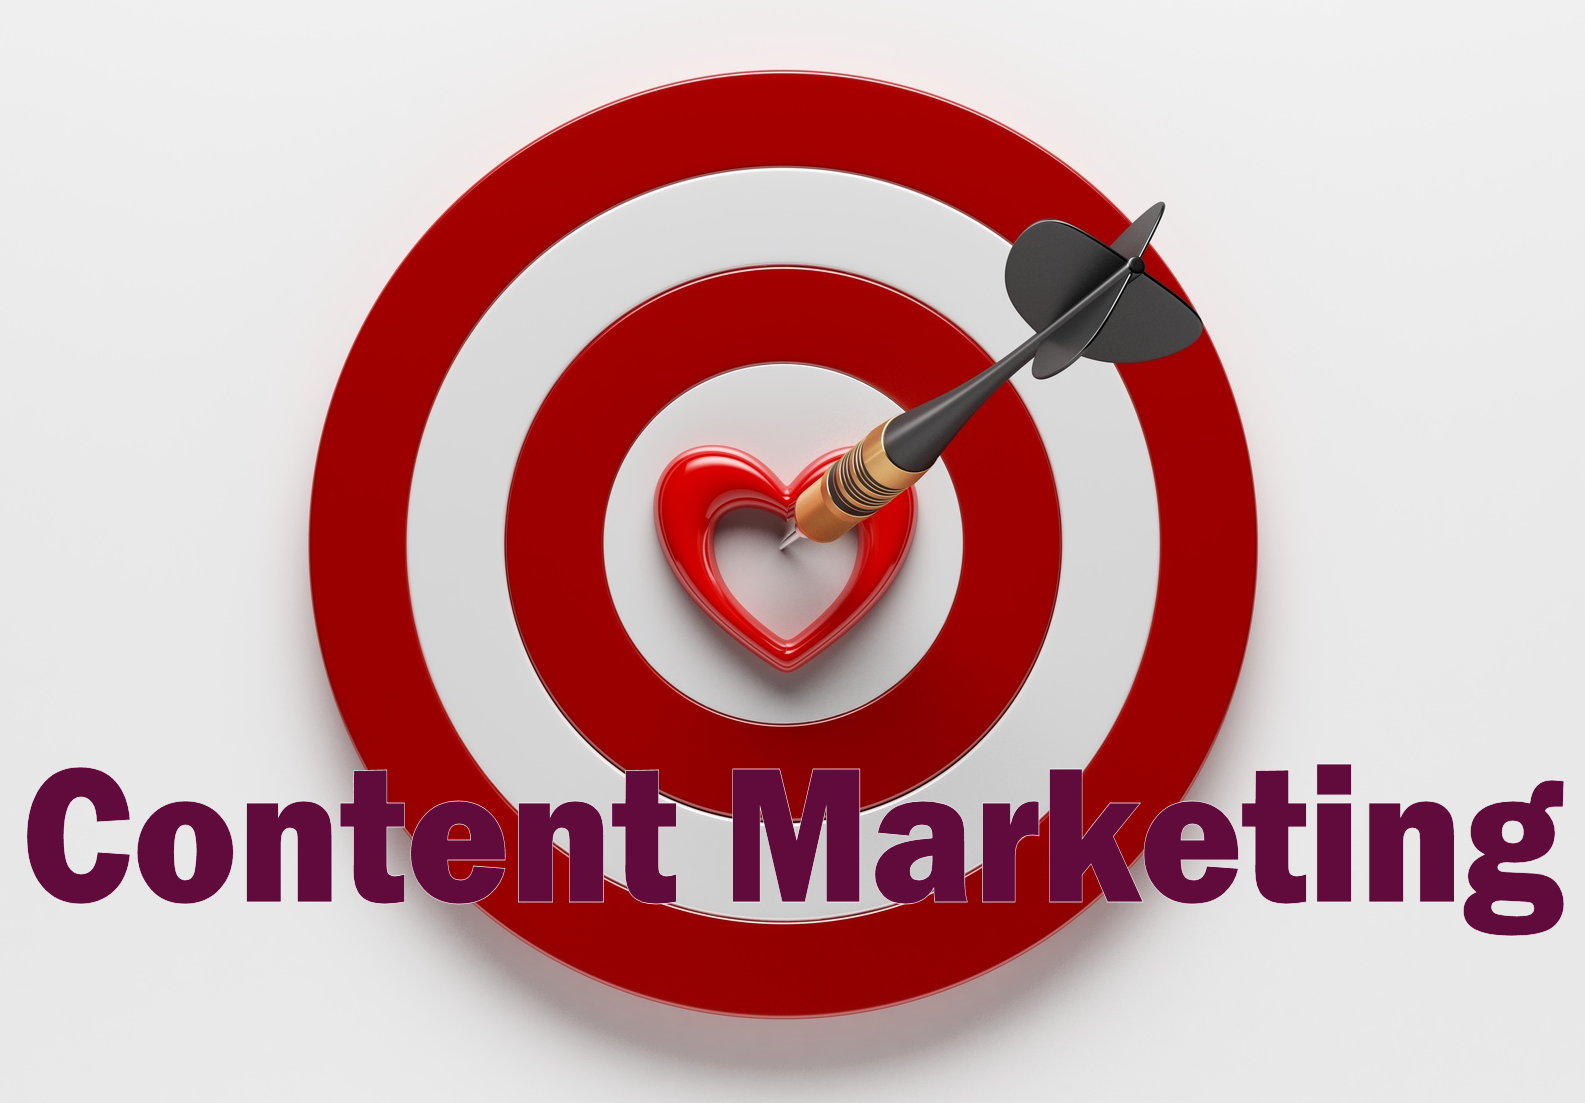 Why Successful Marketers Use Content Marketing to Engage Online With Prospects